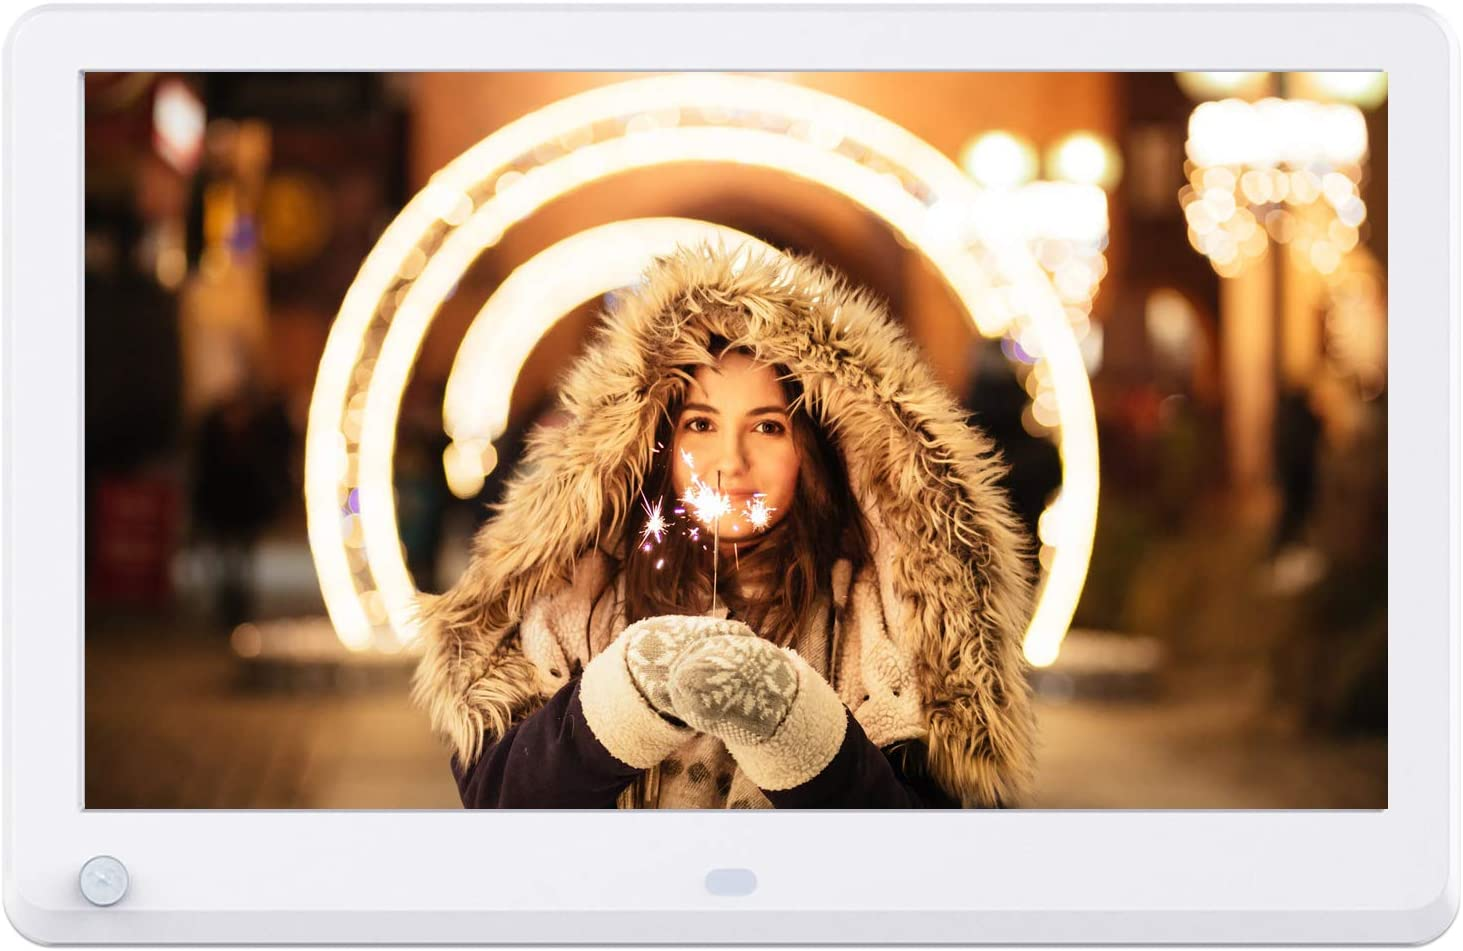 Atatat 11.6 Inch Digital Photo Frame with Motion Sensor, 1920x1080 IPS Screen, Digital Picture Frame Support 1080P Video, Music, Photo, Breakpoint Play,Adjustable Brightness,Auto-Rotate,Remote control